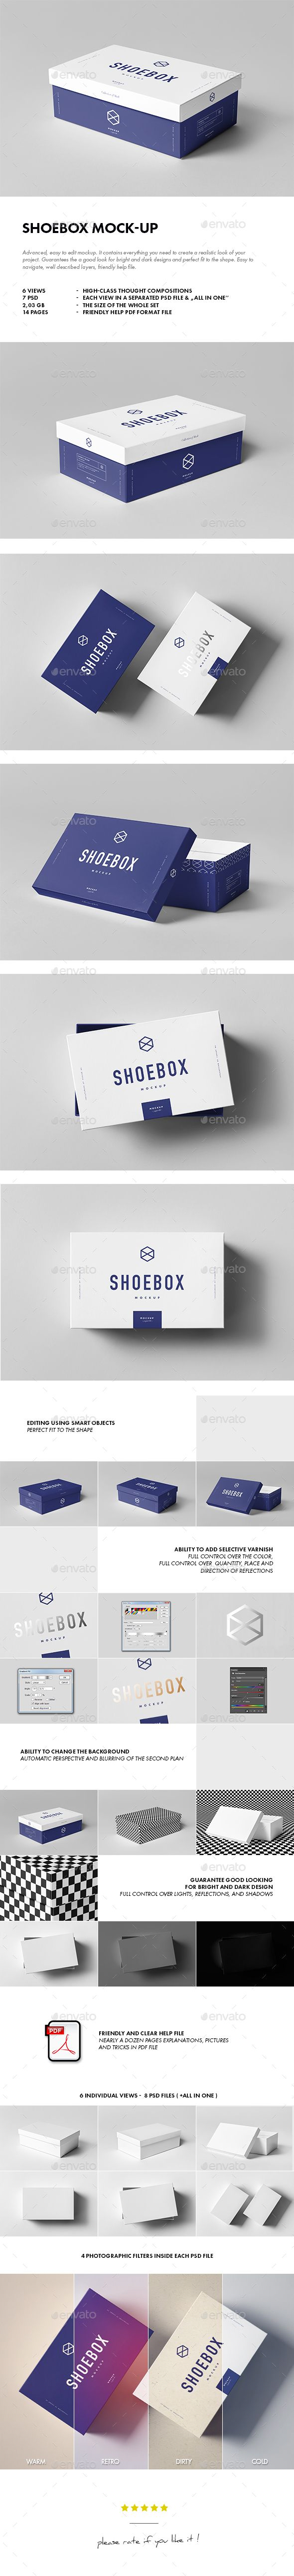 Pin by Bashooka Web & Graphic Design on realistic PSD Mockup